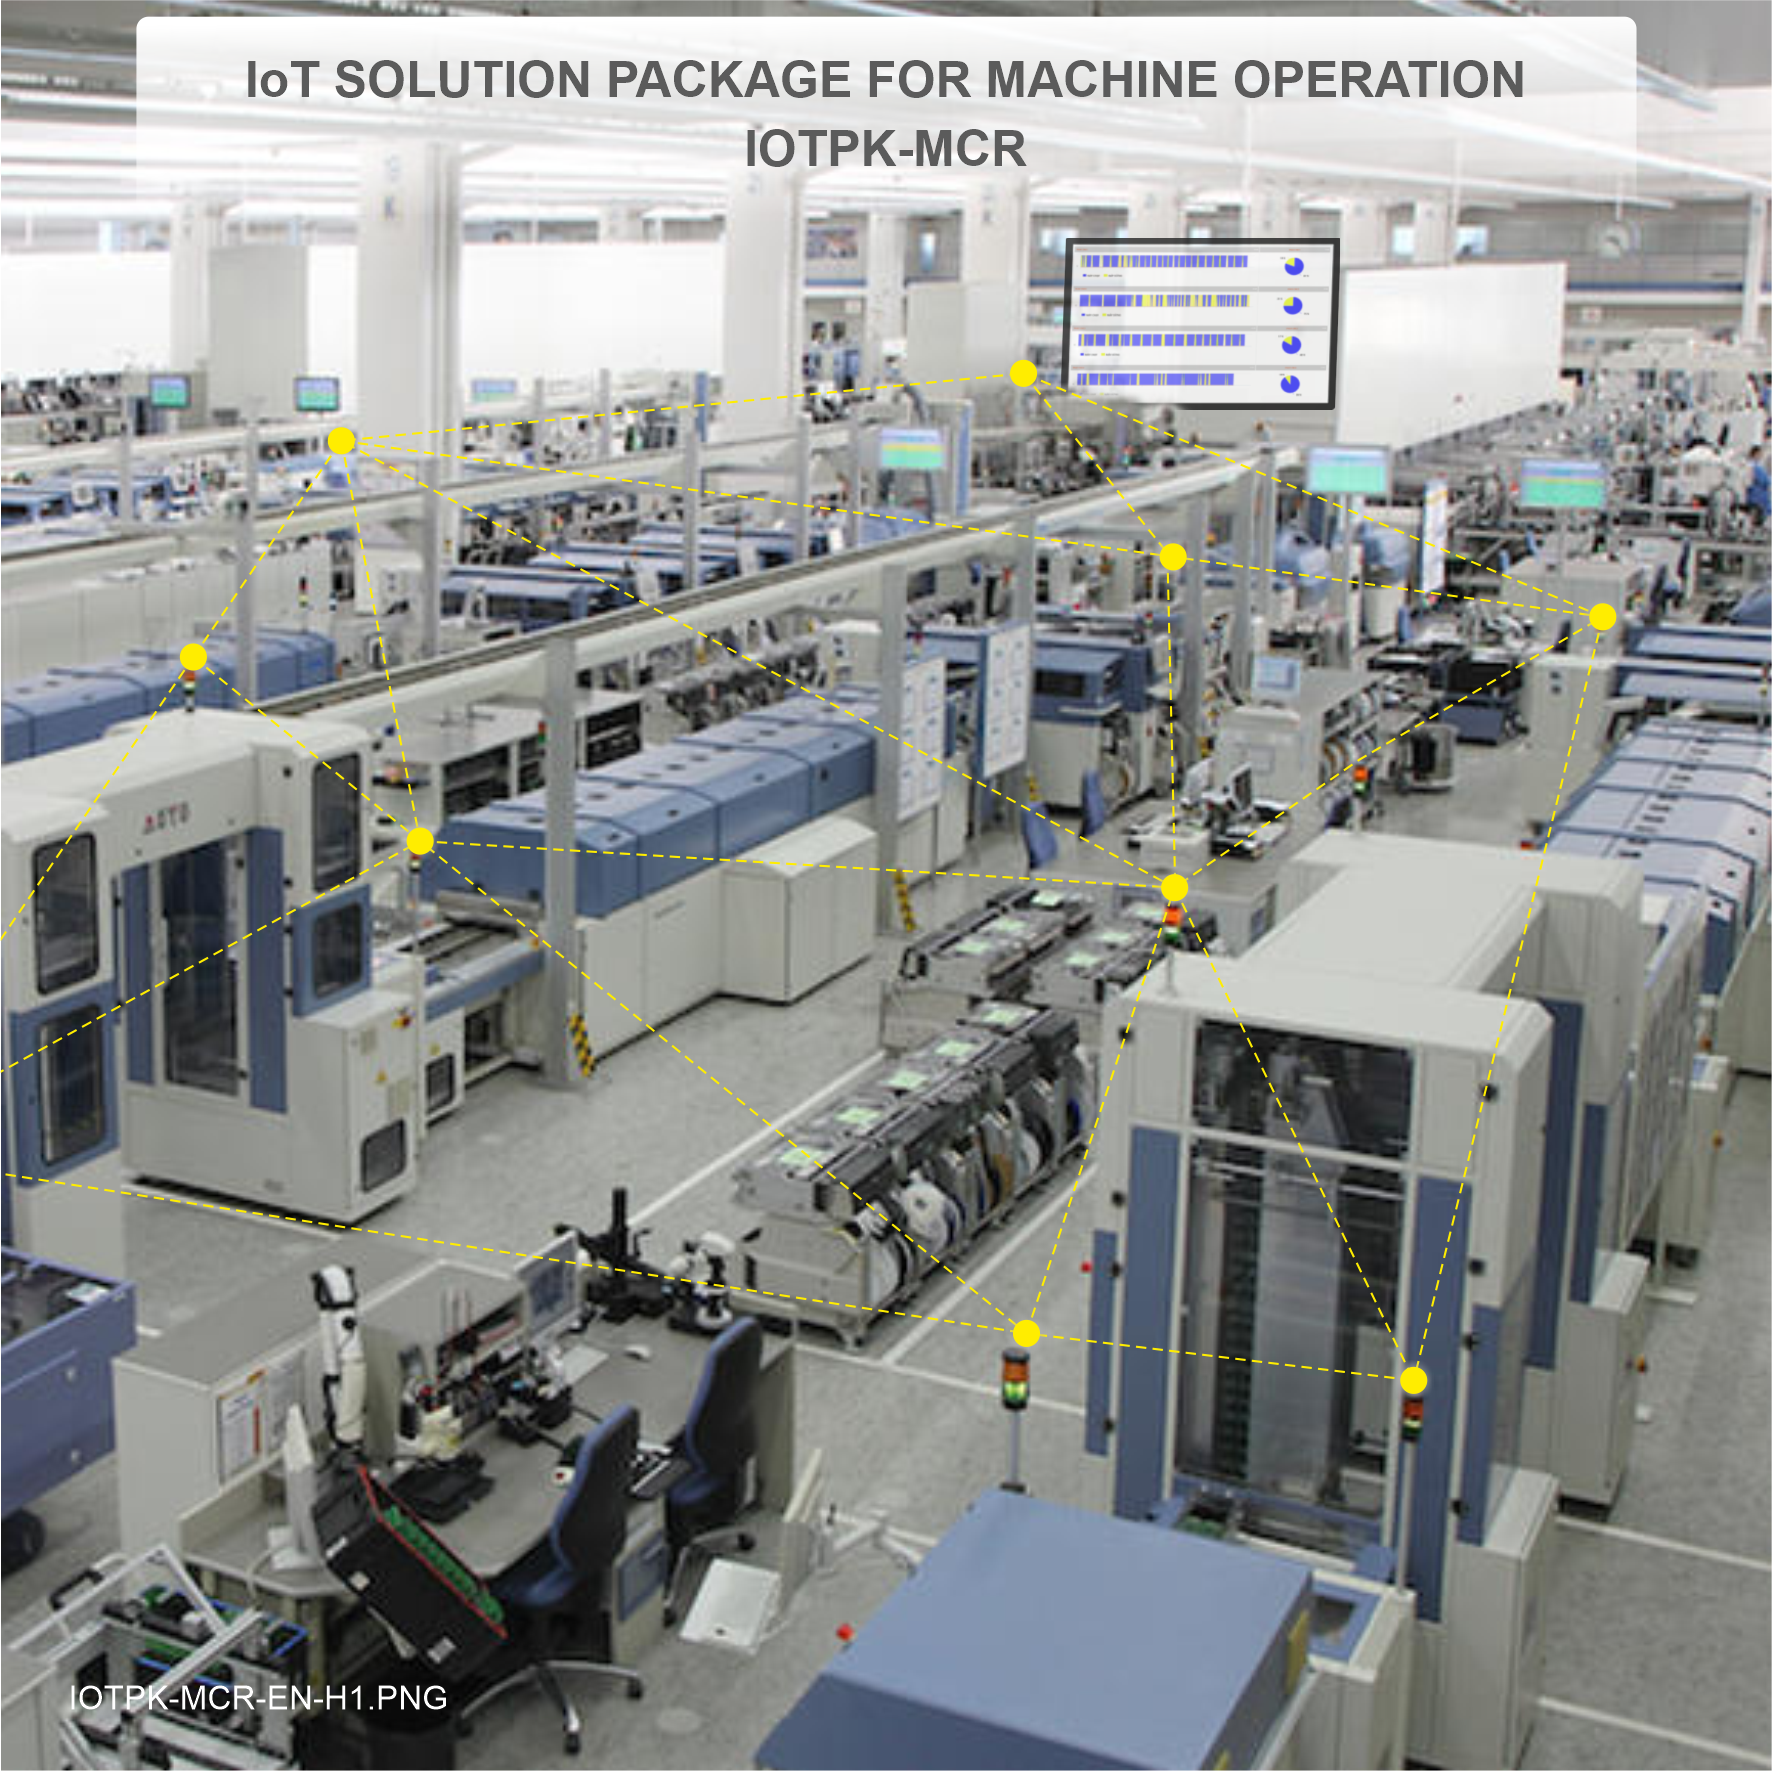 IoT PACKAGE FOR MACHINE OPERATION